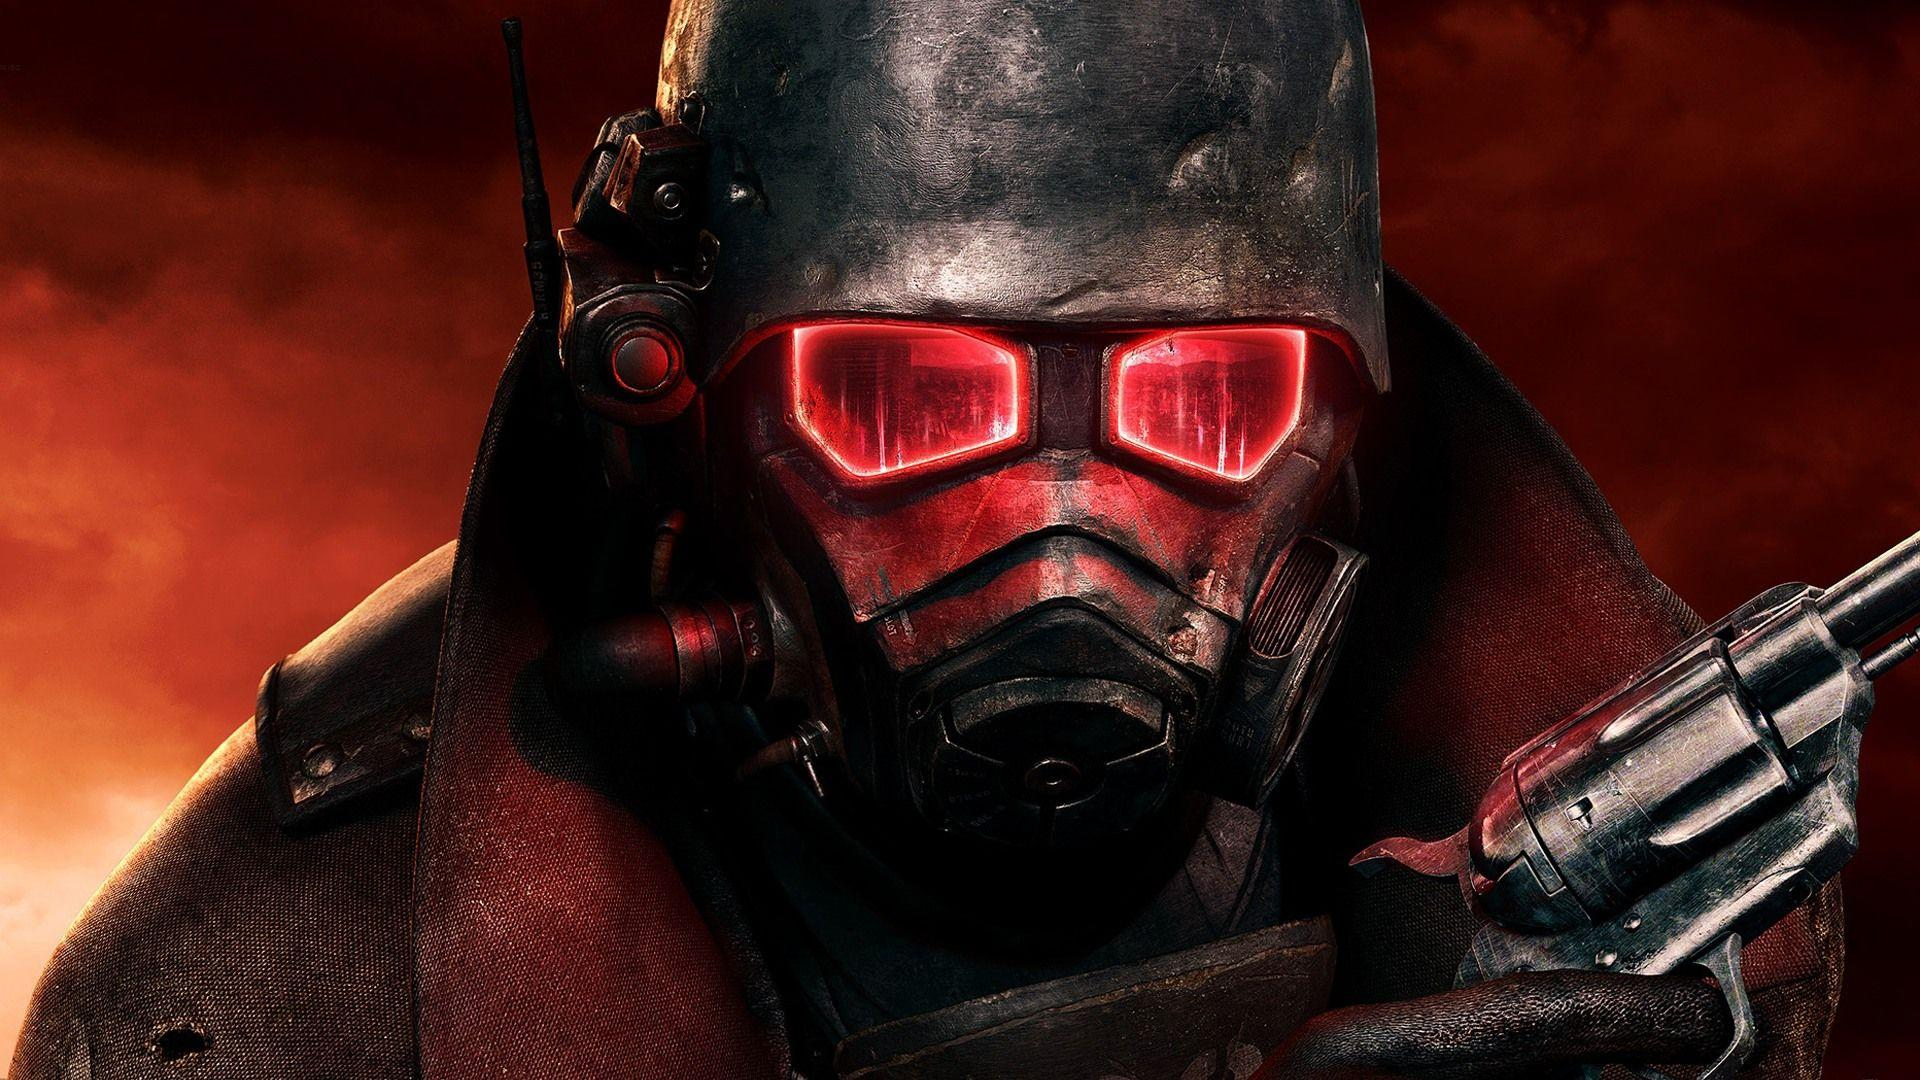 Fallout Ncr Ranger Wallpapers Wallpaper Cave